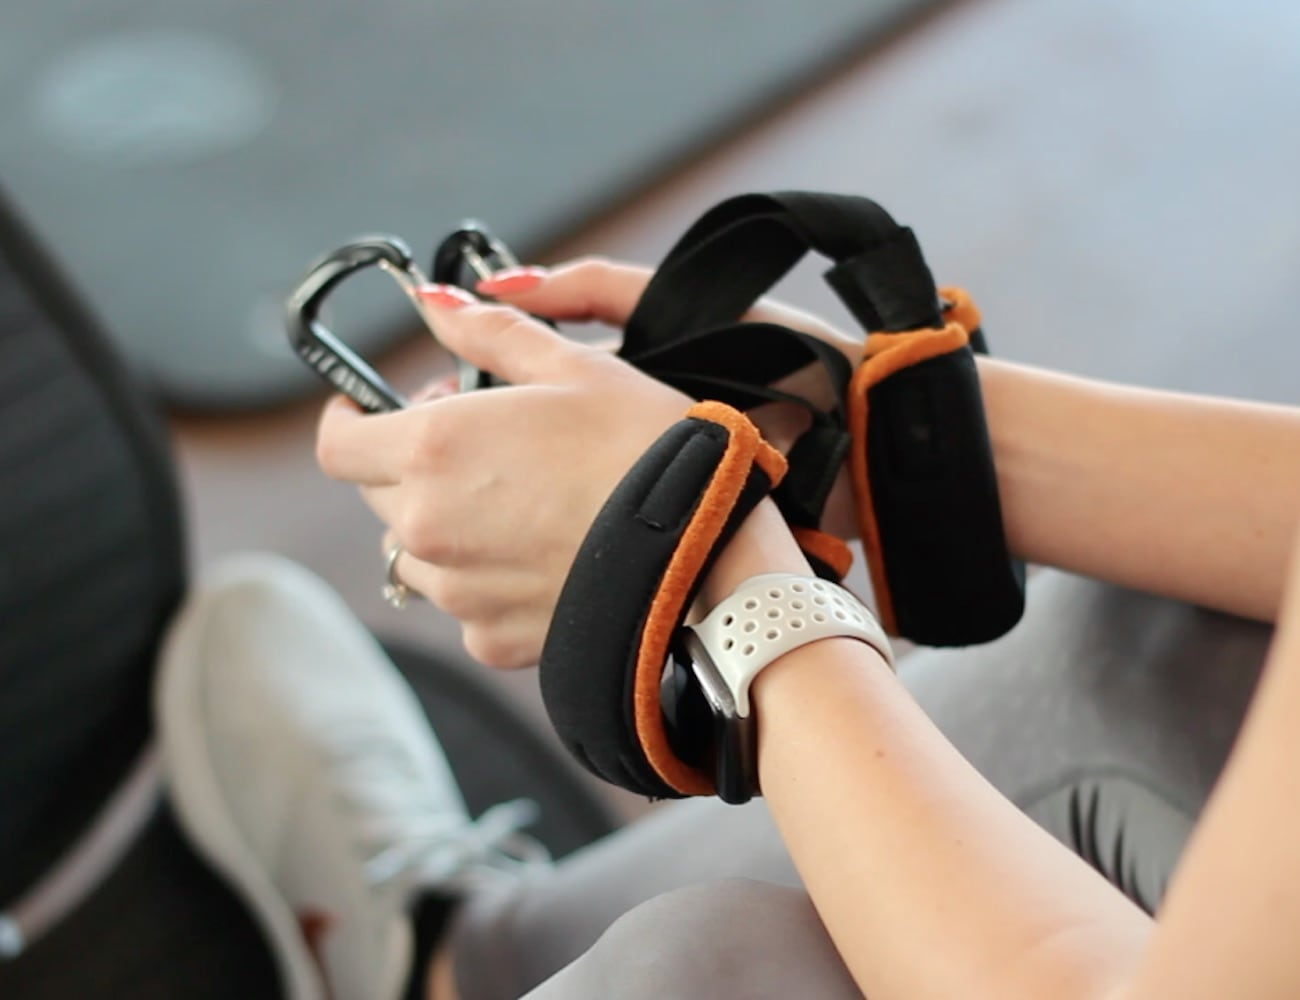 IsoStraps – Portable Gym Attachments